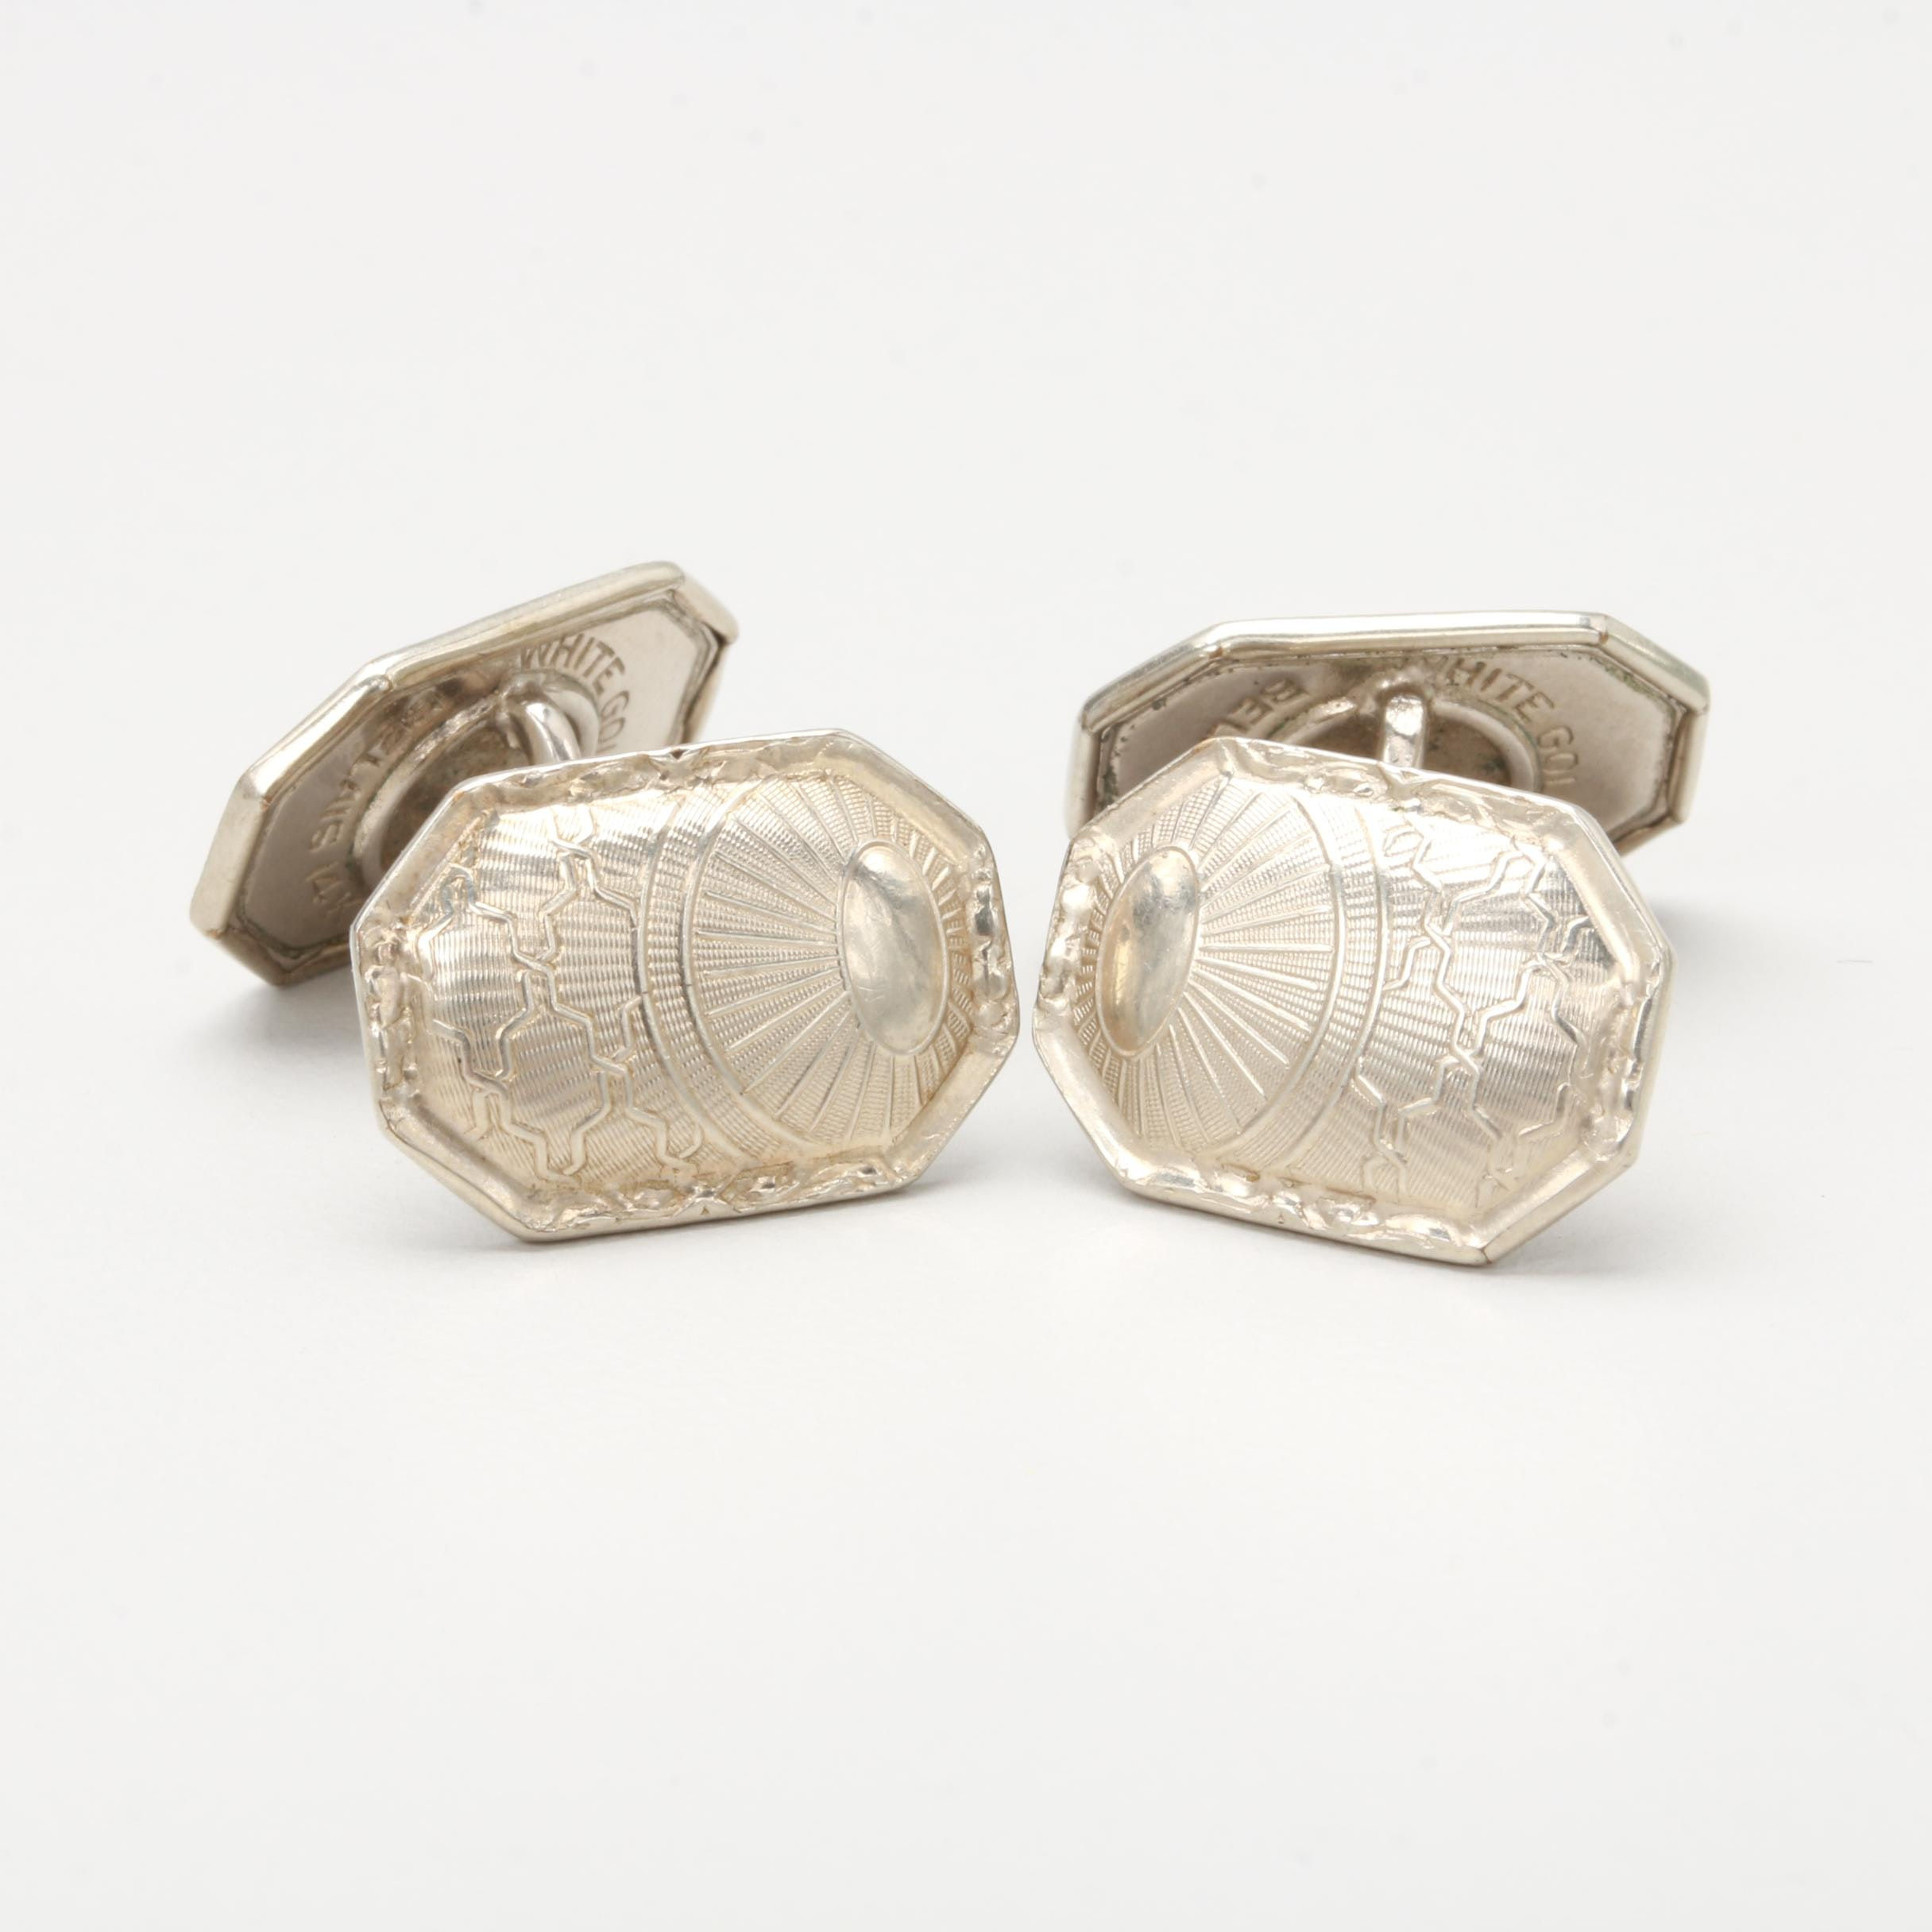 14K White Gold Capped Cufflinks